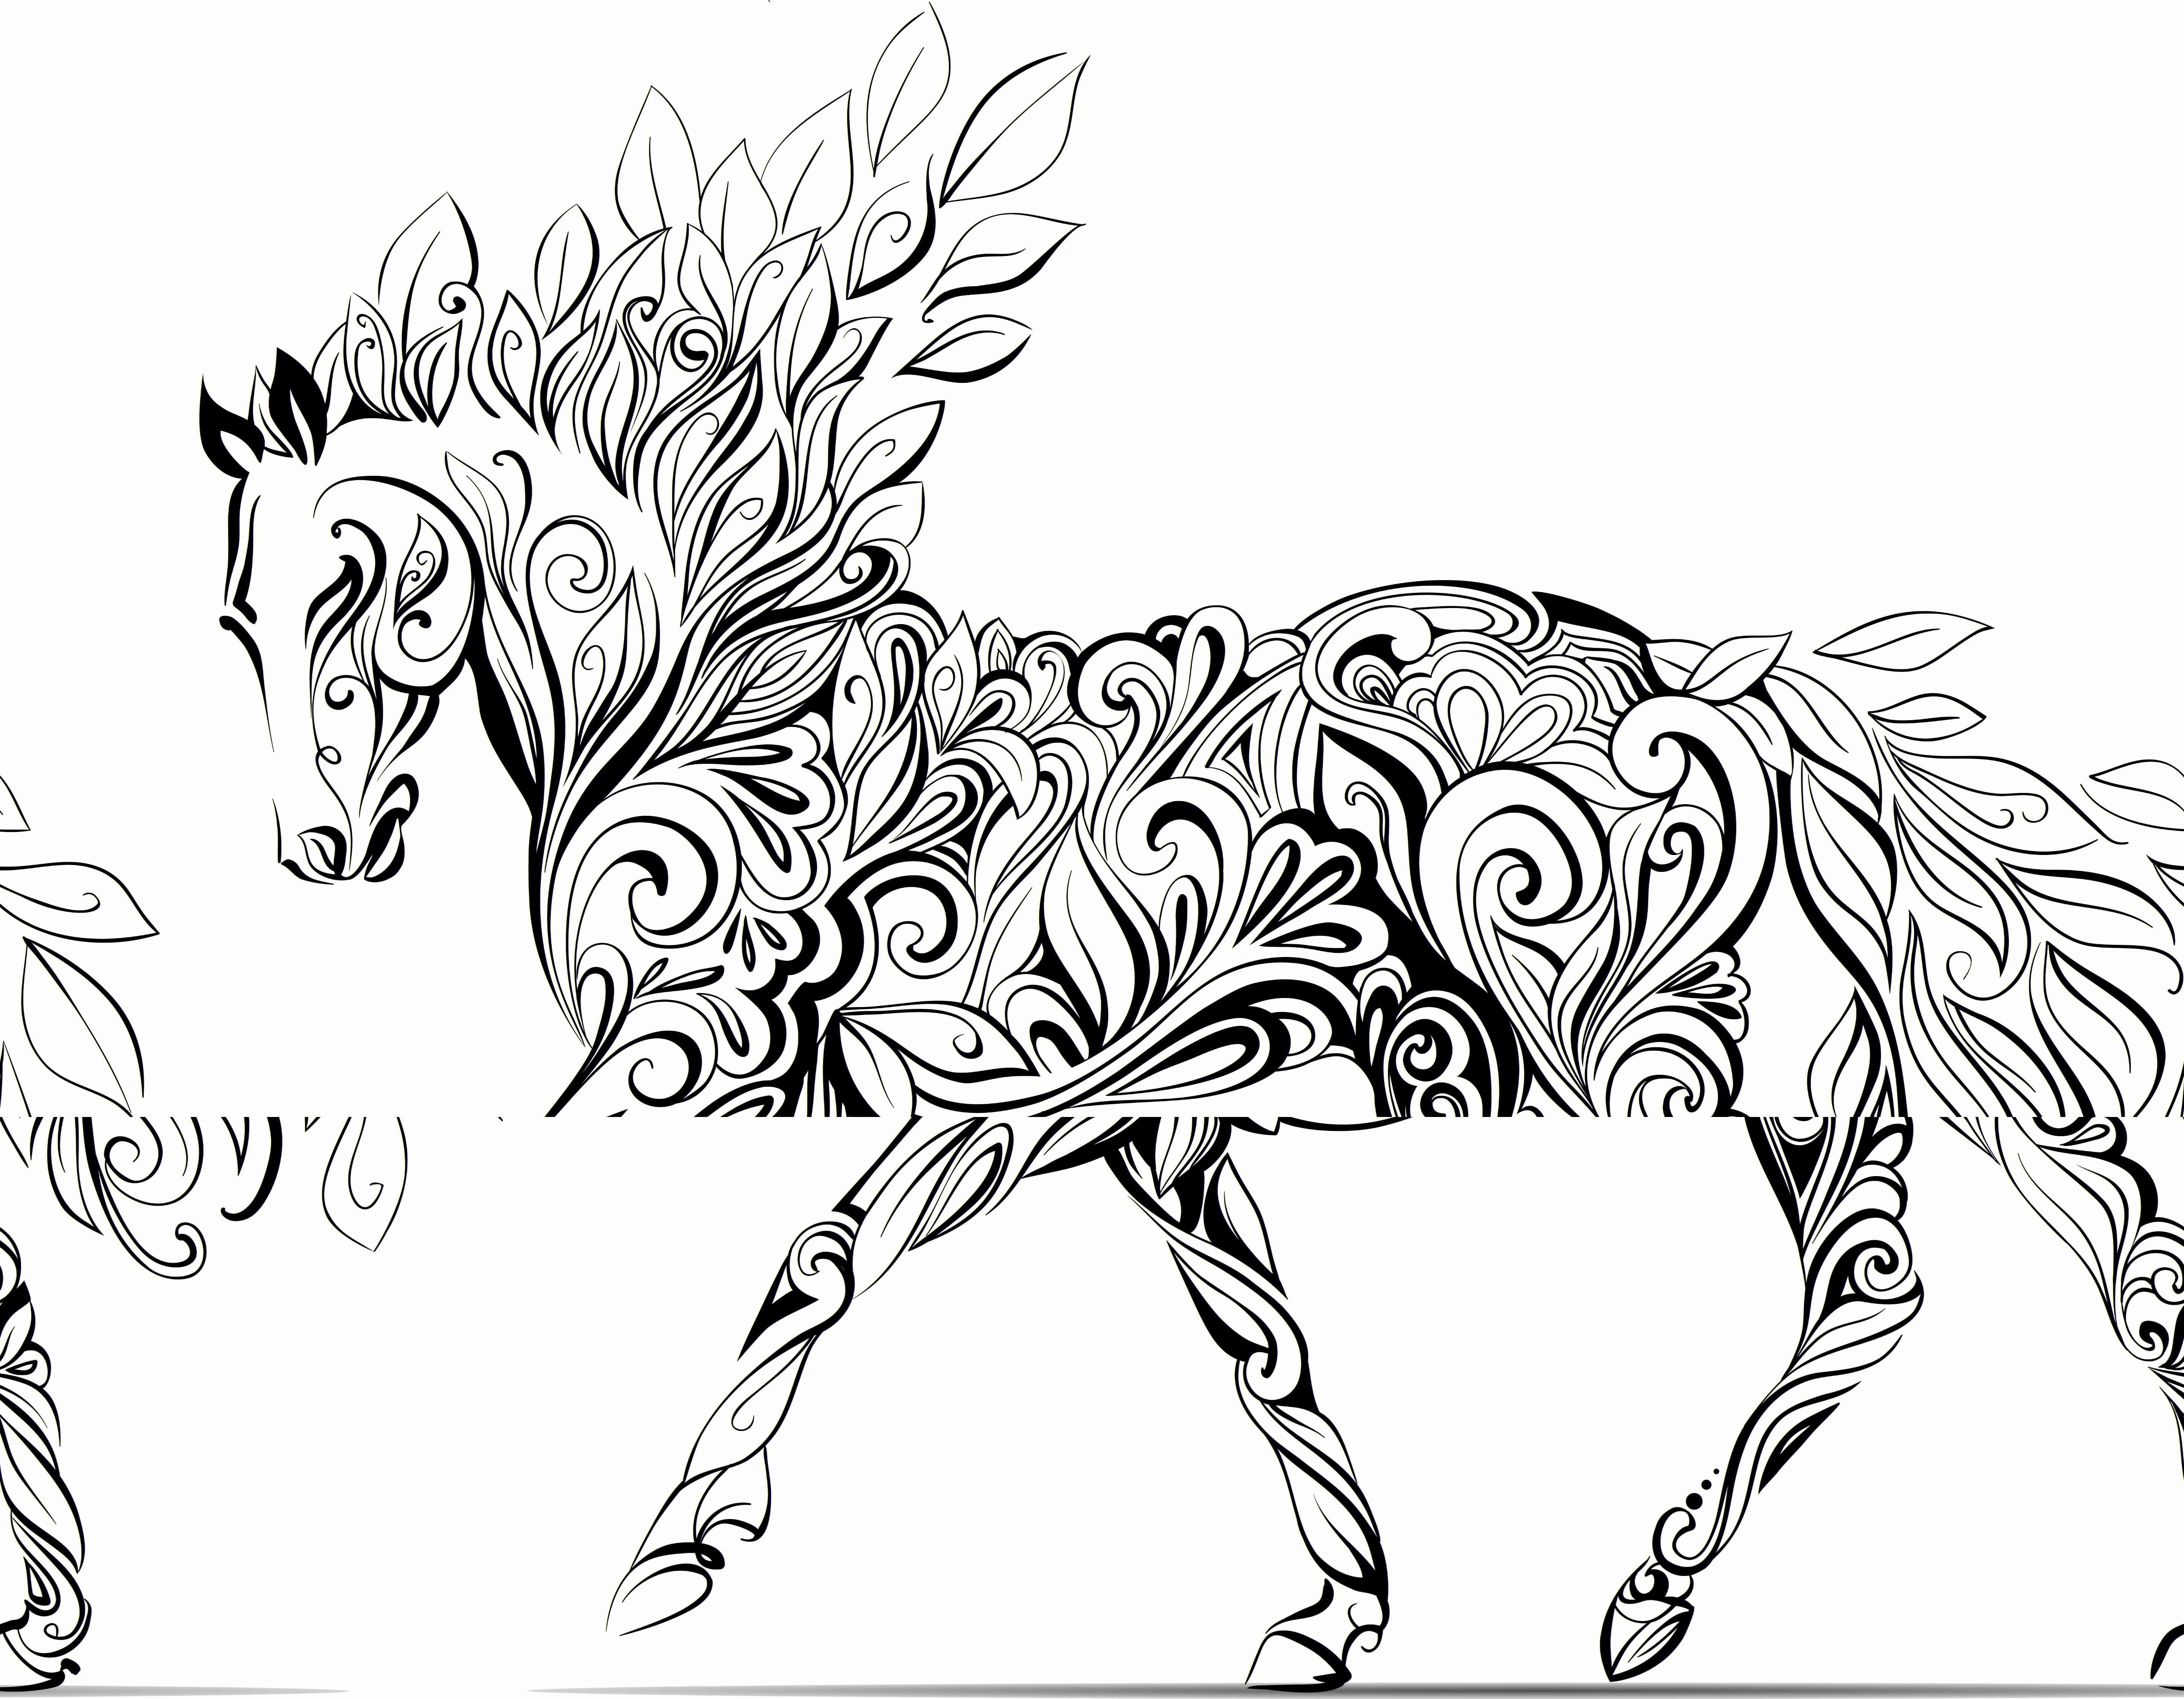 Unicorn Coloring Book Pages  Download 12d - Free For Children